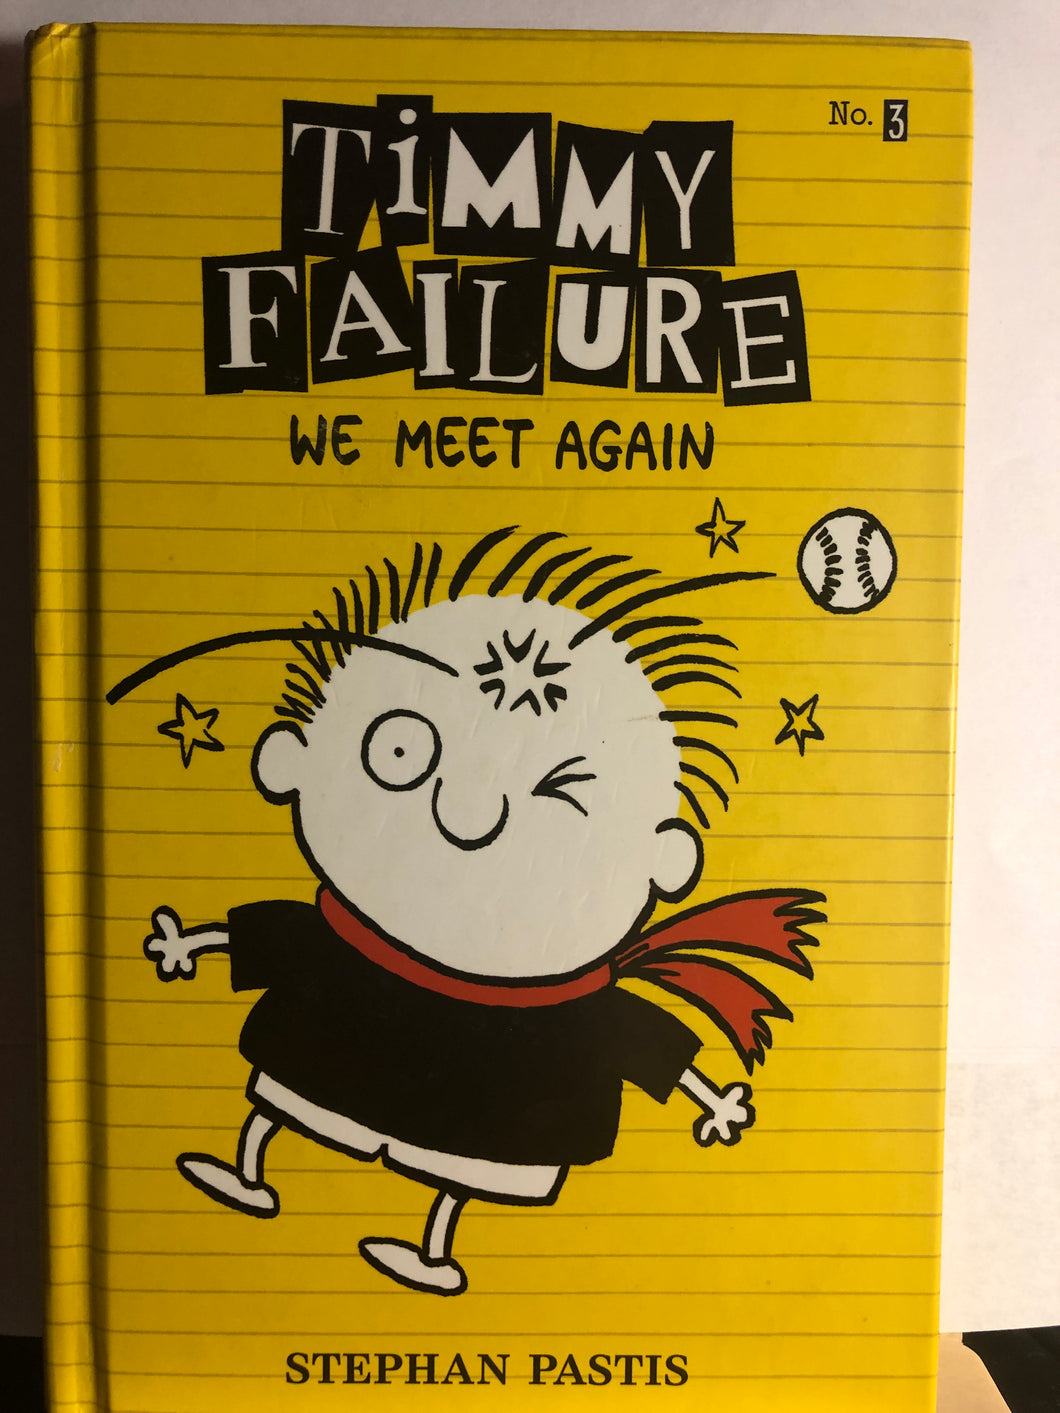 We Meet Again  by Stephan Pastis  (Timmy Failure #3)  Hardcover